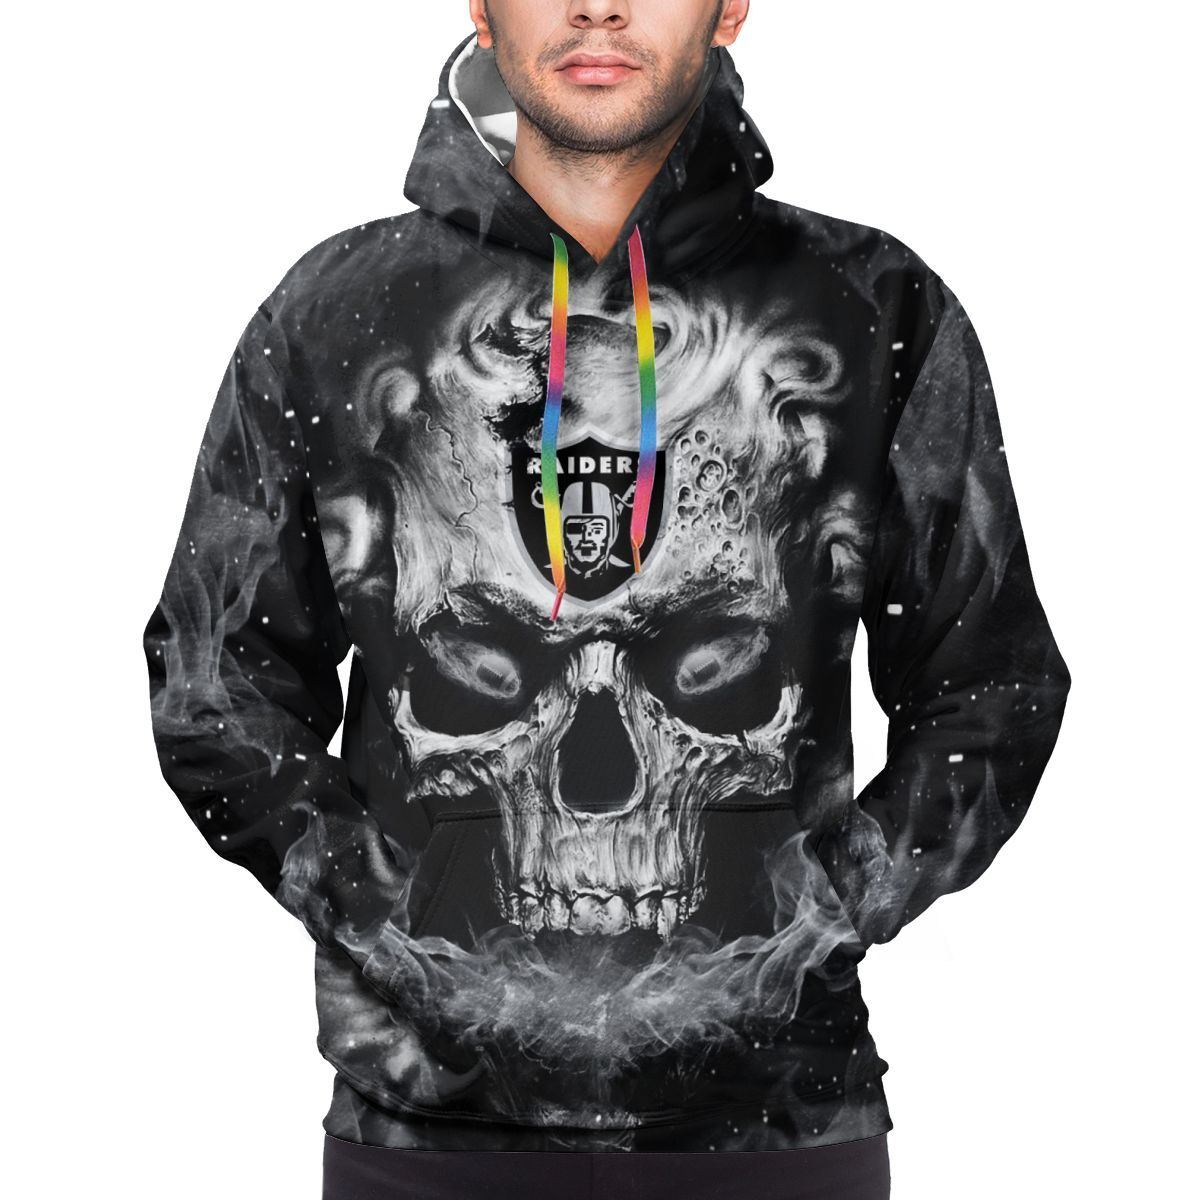 3D Skull Raiders Logo Print Hoodies For Men Pullover Sweatshirt